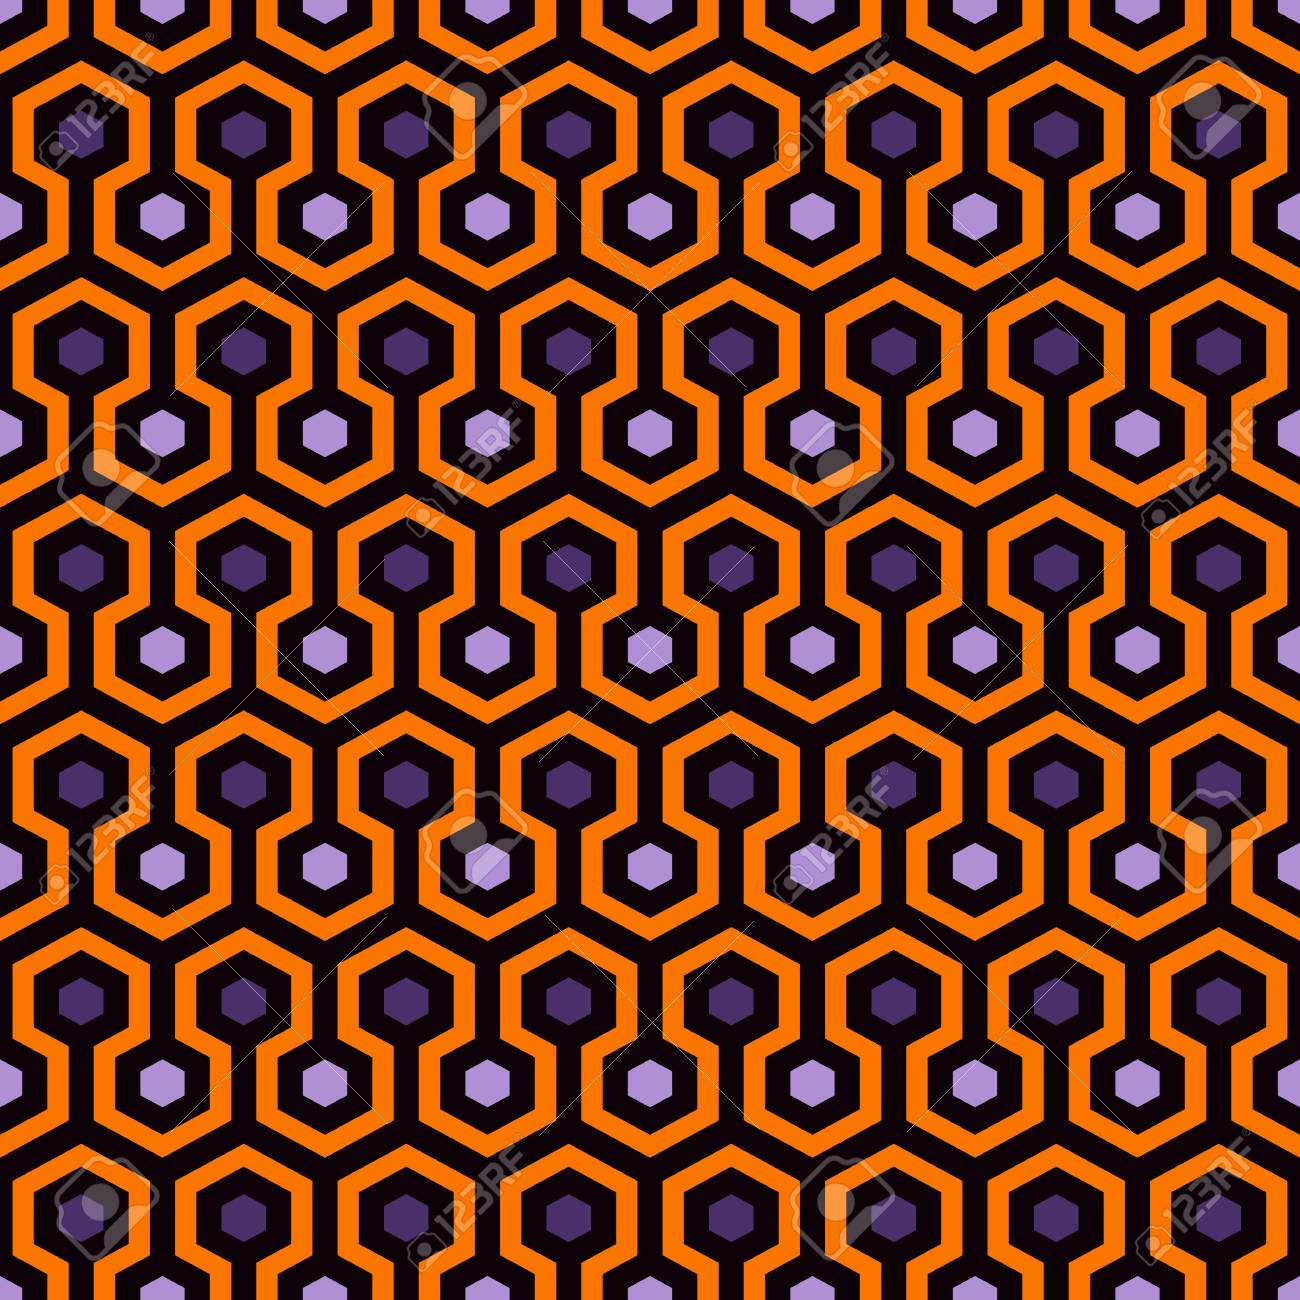 Honeycomb Abstract Background Repeated Hexagon Tiles Mosaic 1300x1300